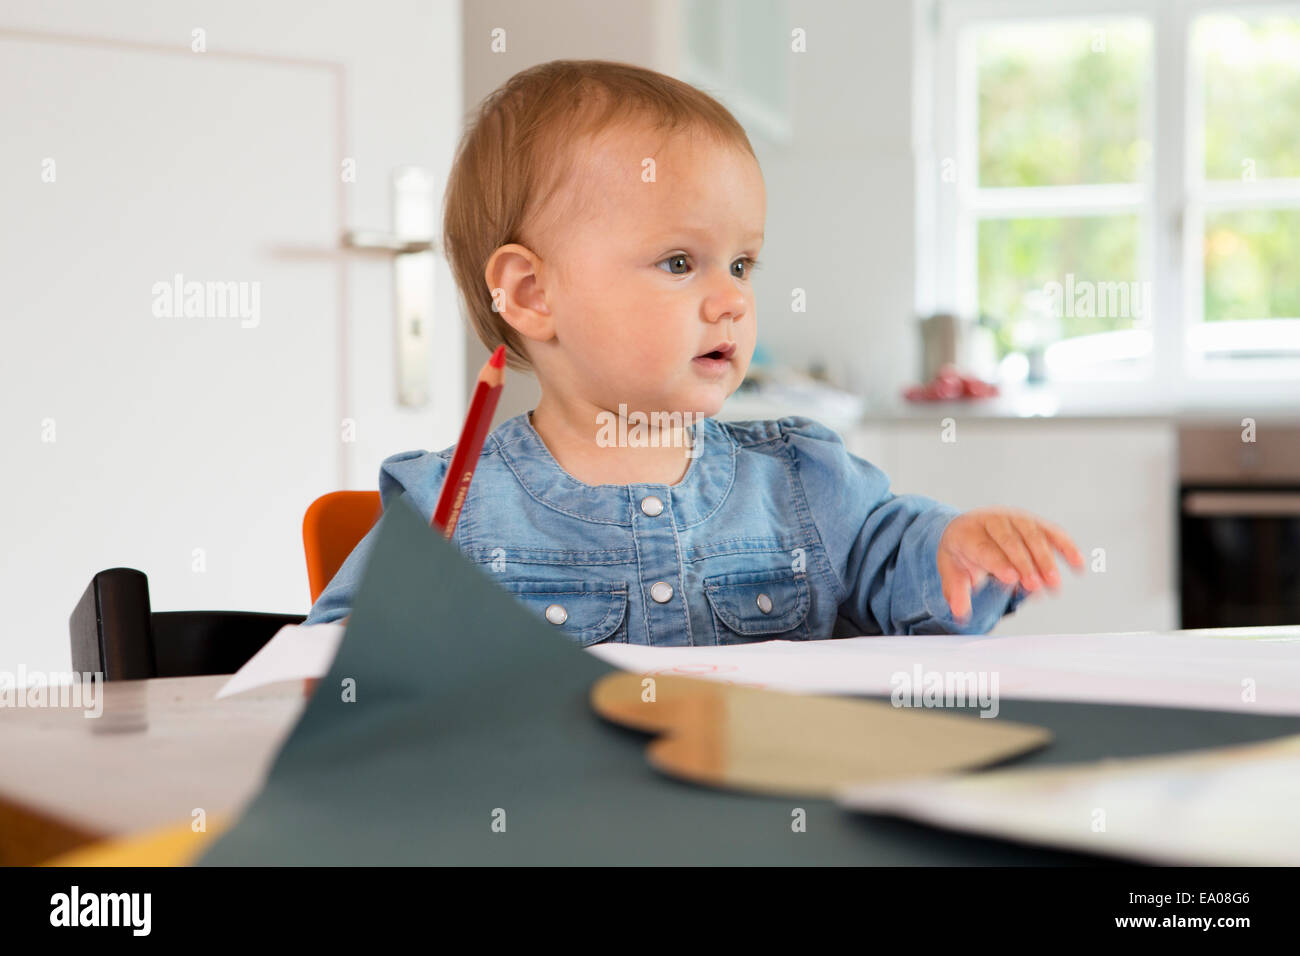 Baby girl with pencil and paper - Stock Image